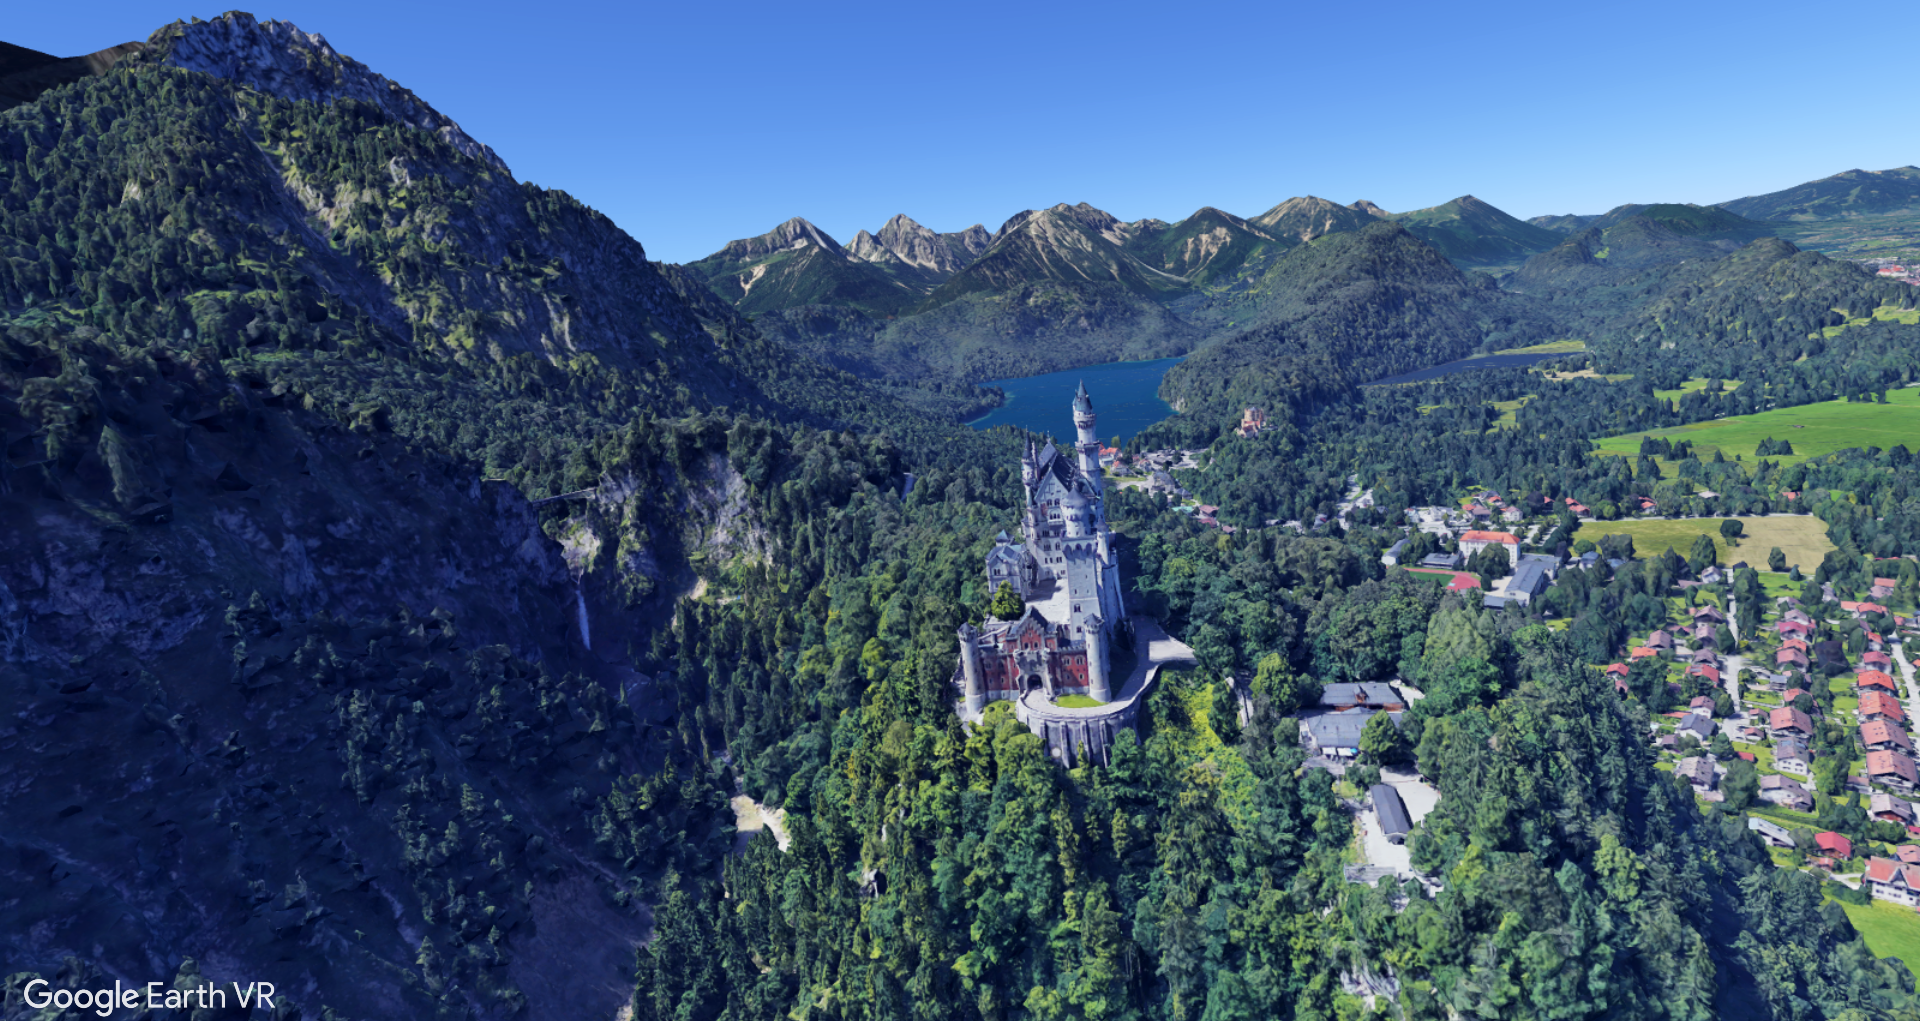 Neuschwanstein Castle in Southern Germany by Google Earth VR